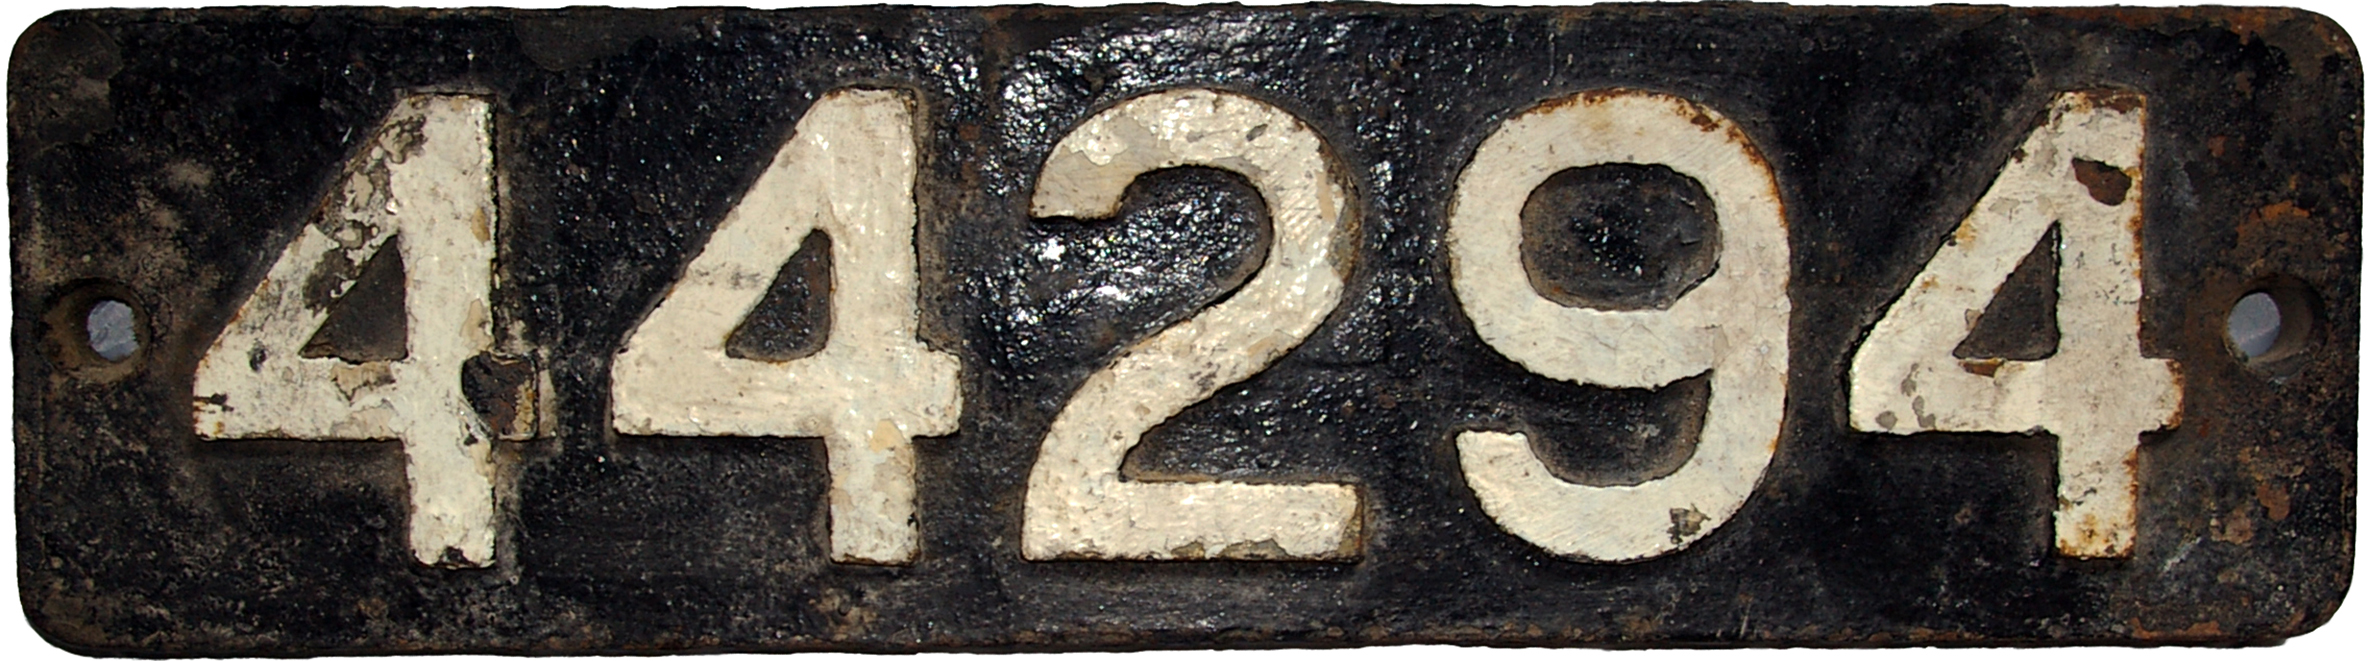 Smokebox Numberplate 44294. Ex LMS Class 4f Built